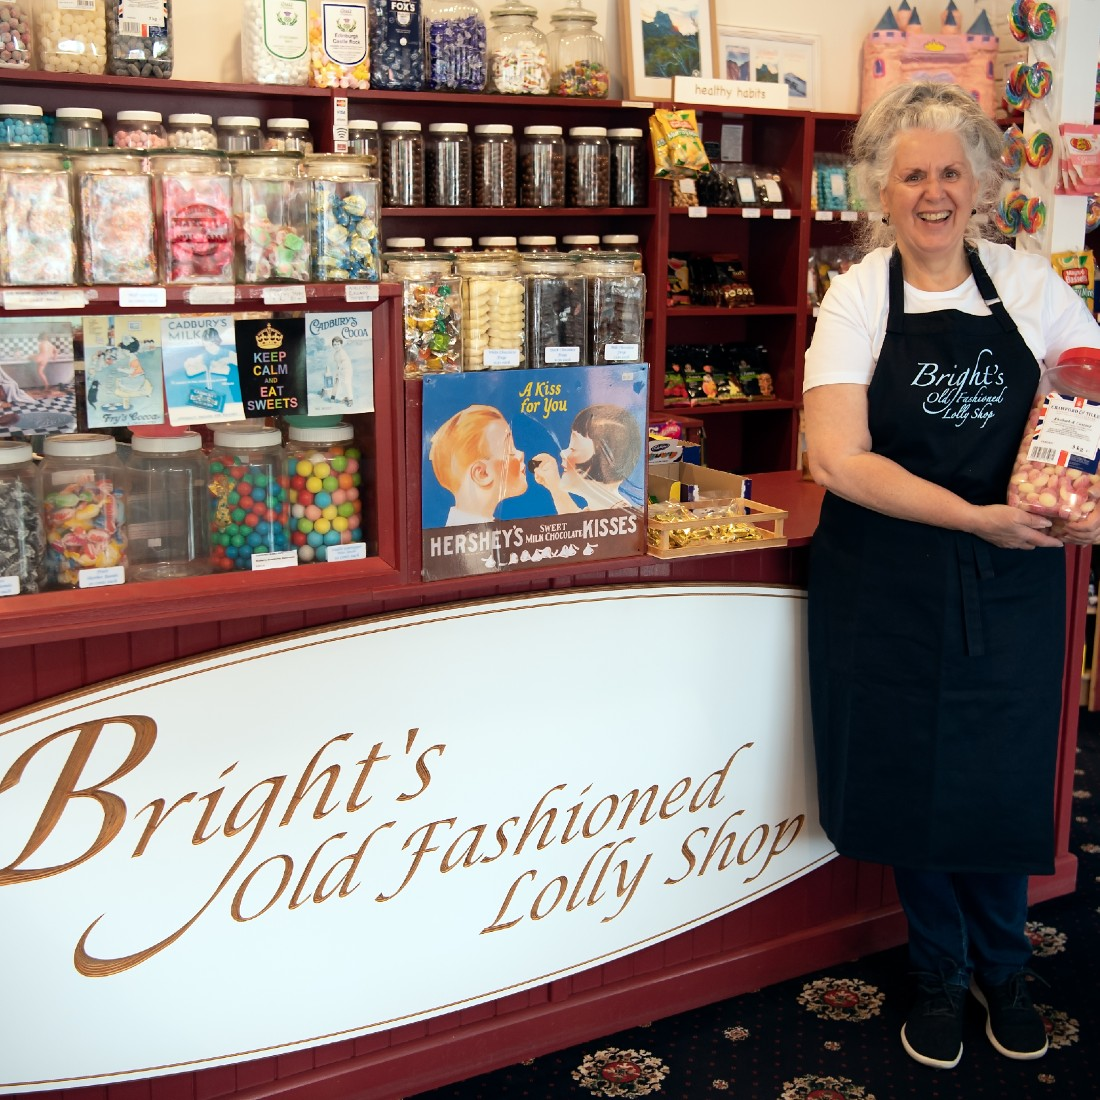 Bright's Old Fashion Lolly Shop store